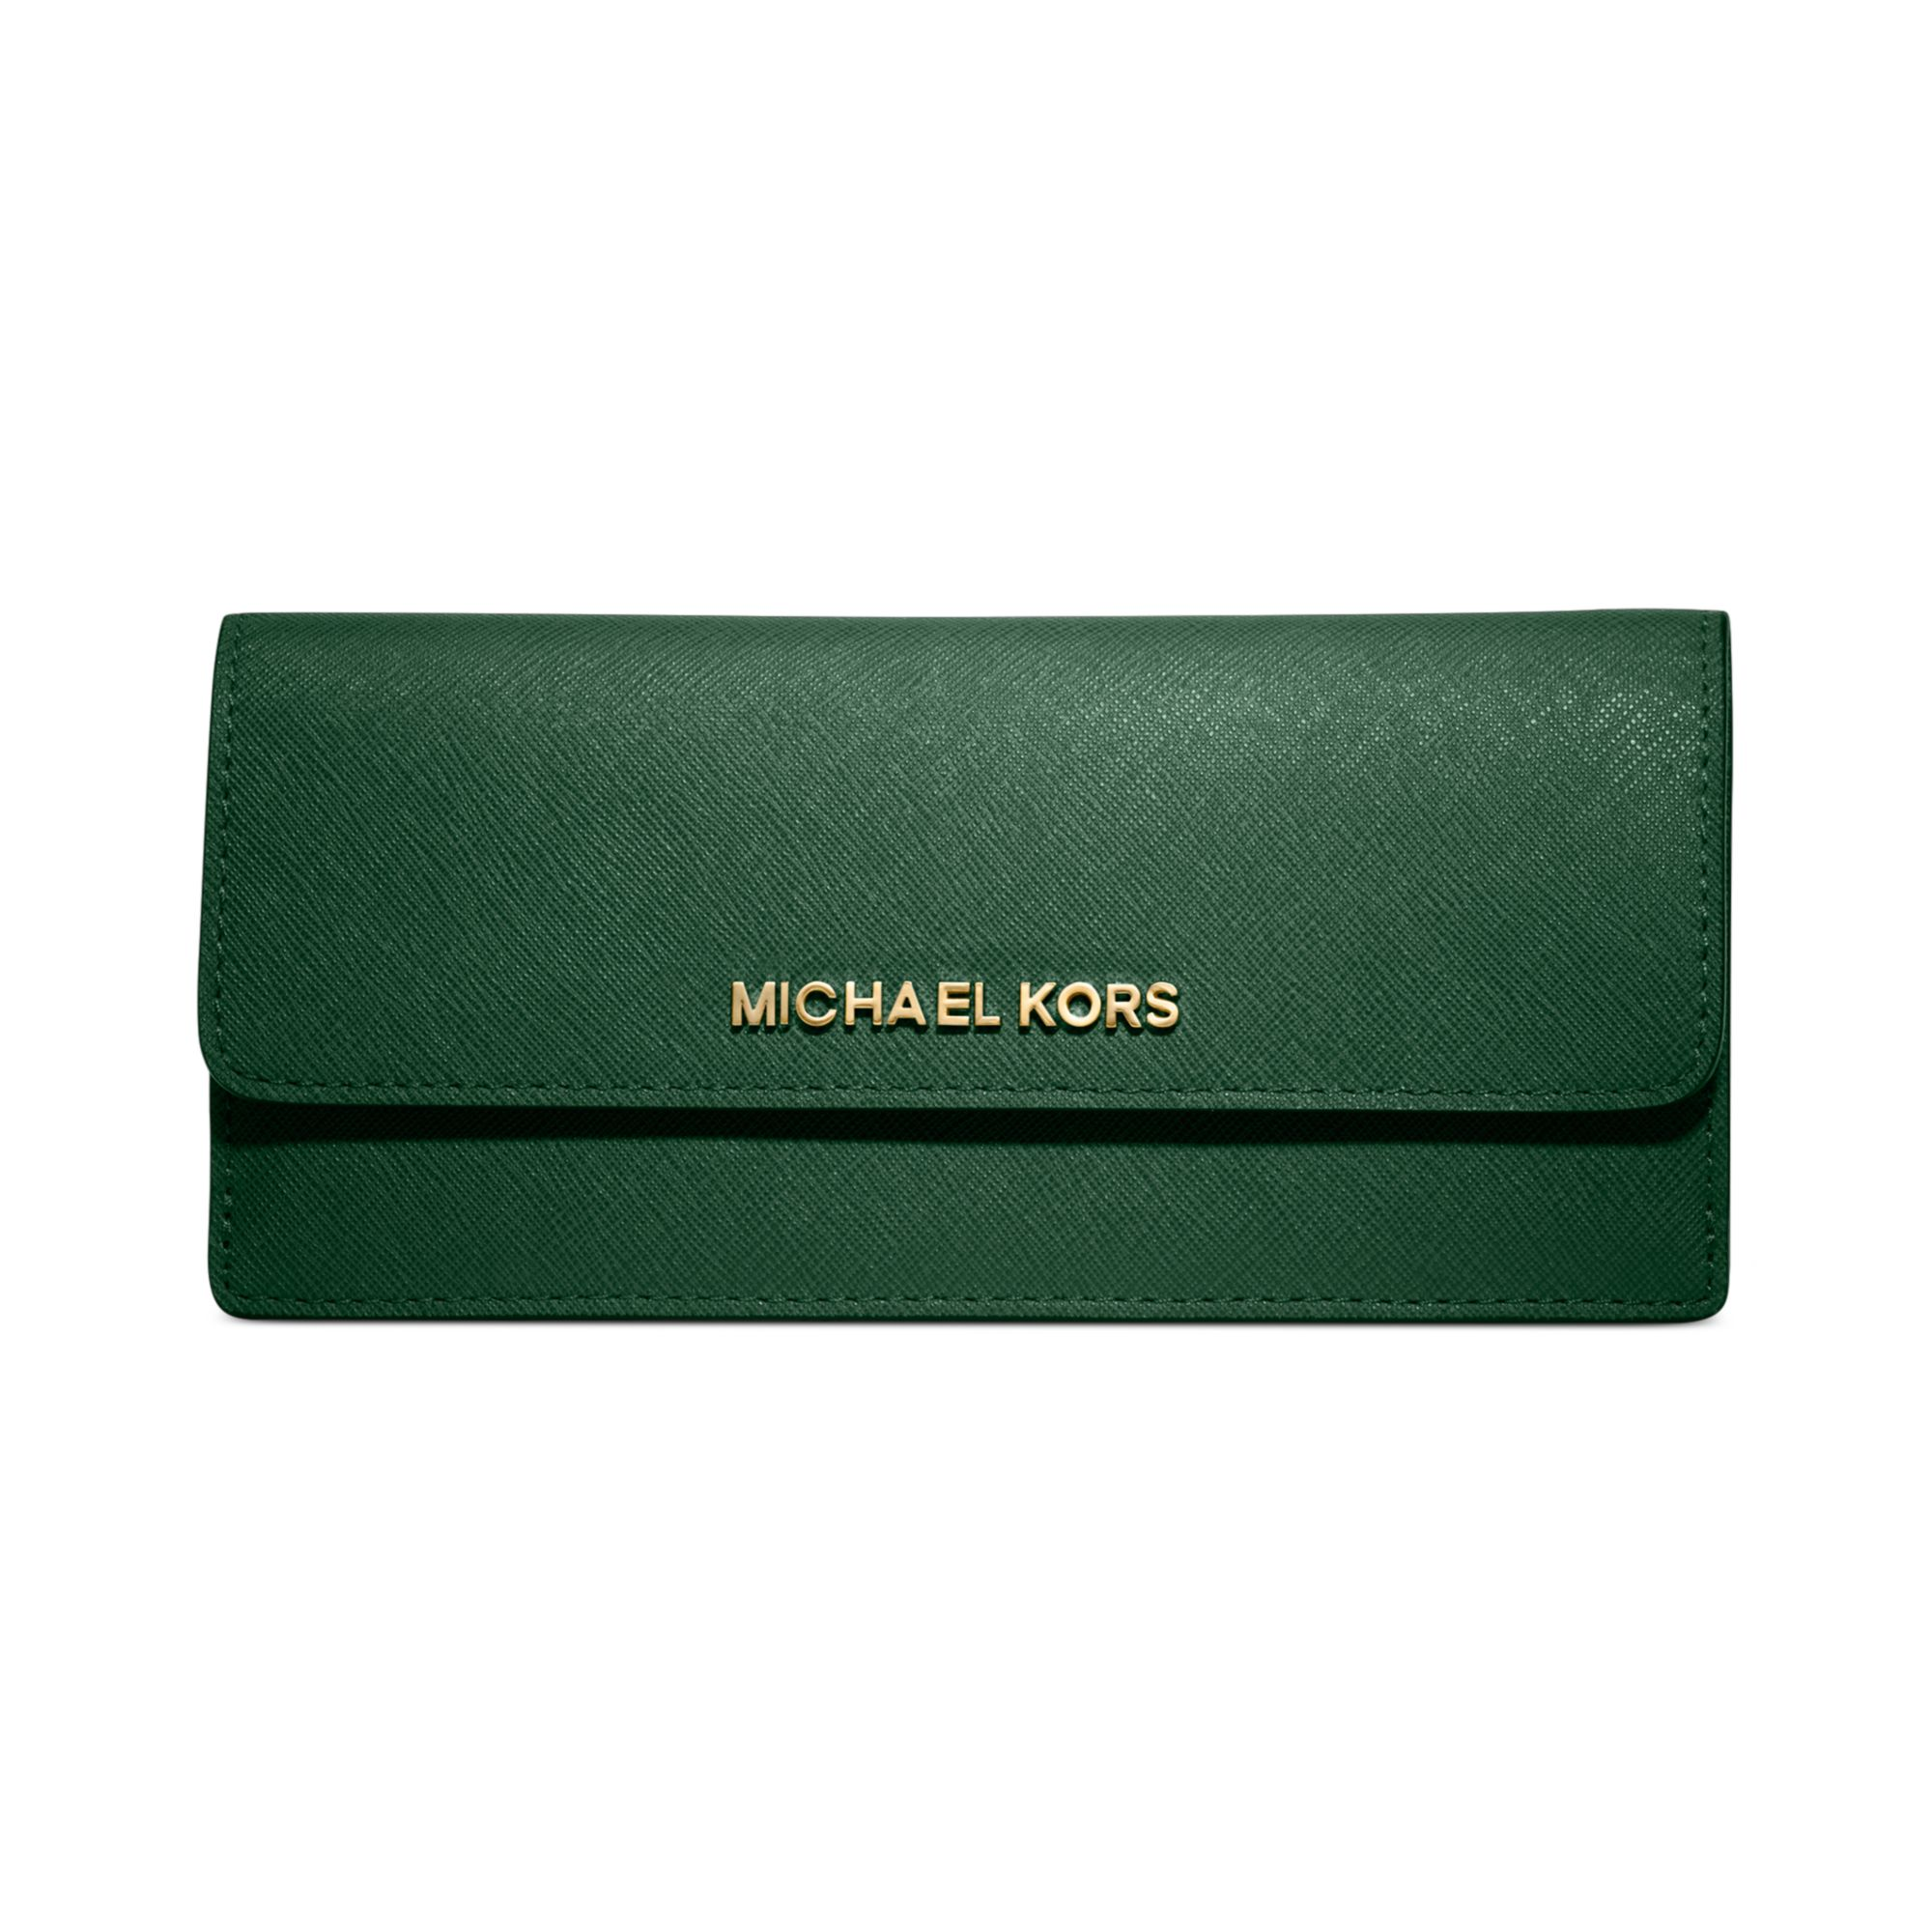 11c99a11affee6 Michael Kors Jet Set Travel Wallet in Green - Lyst